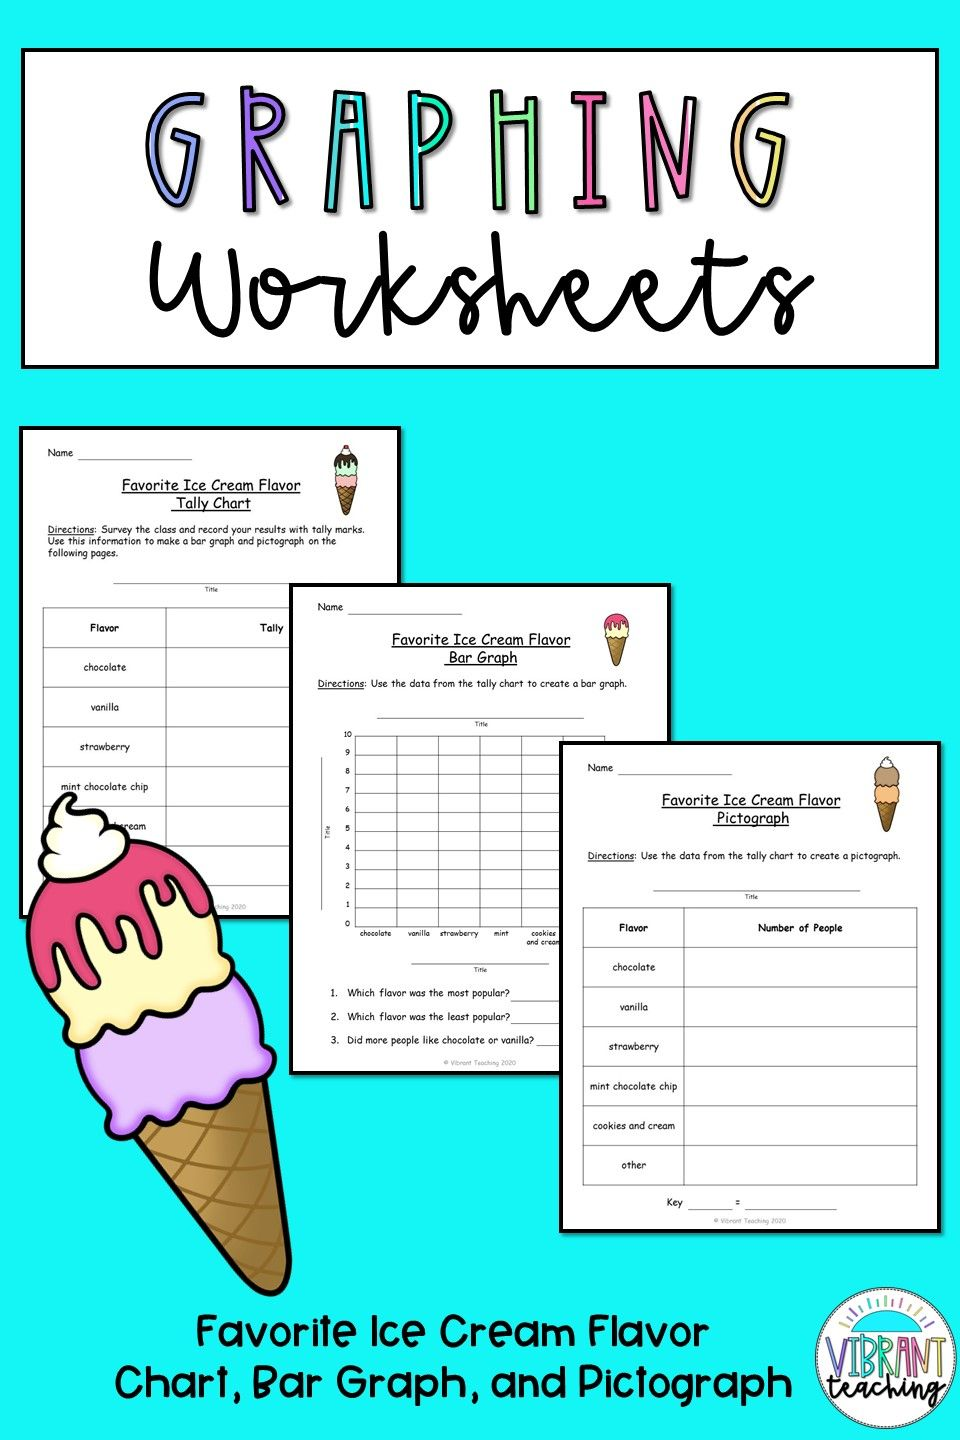 medium resolution of Graphing Worksheets: Favorite Ice Cream Flavor   Graphing worksheets